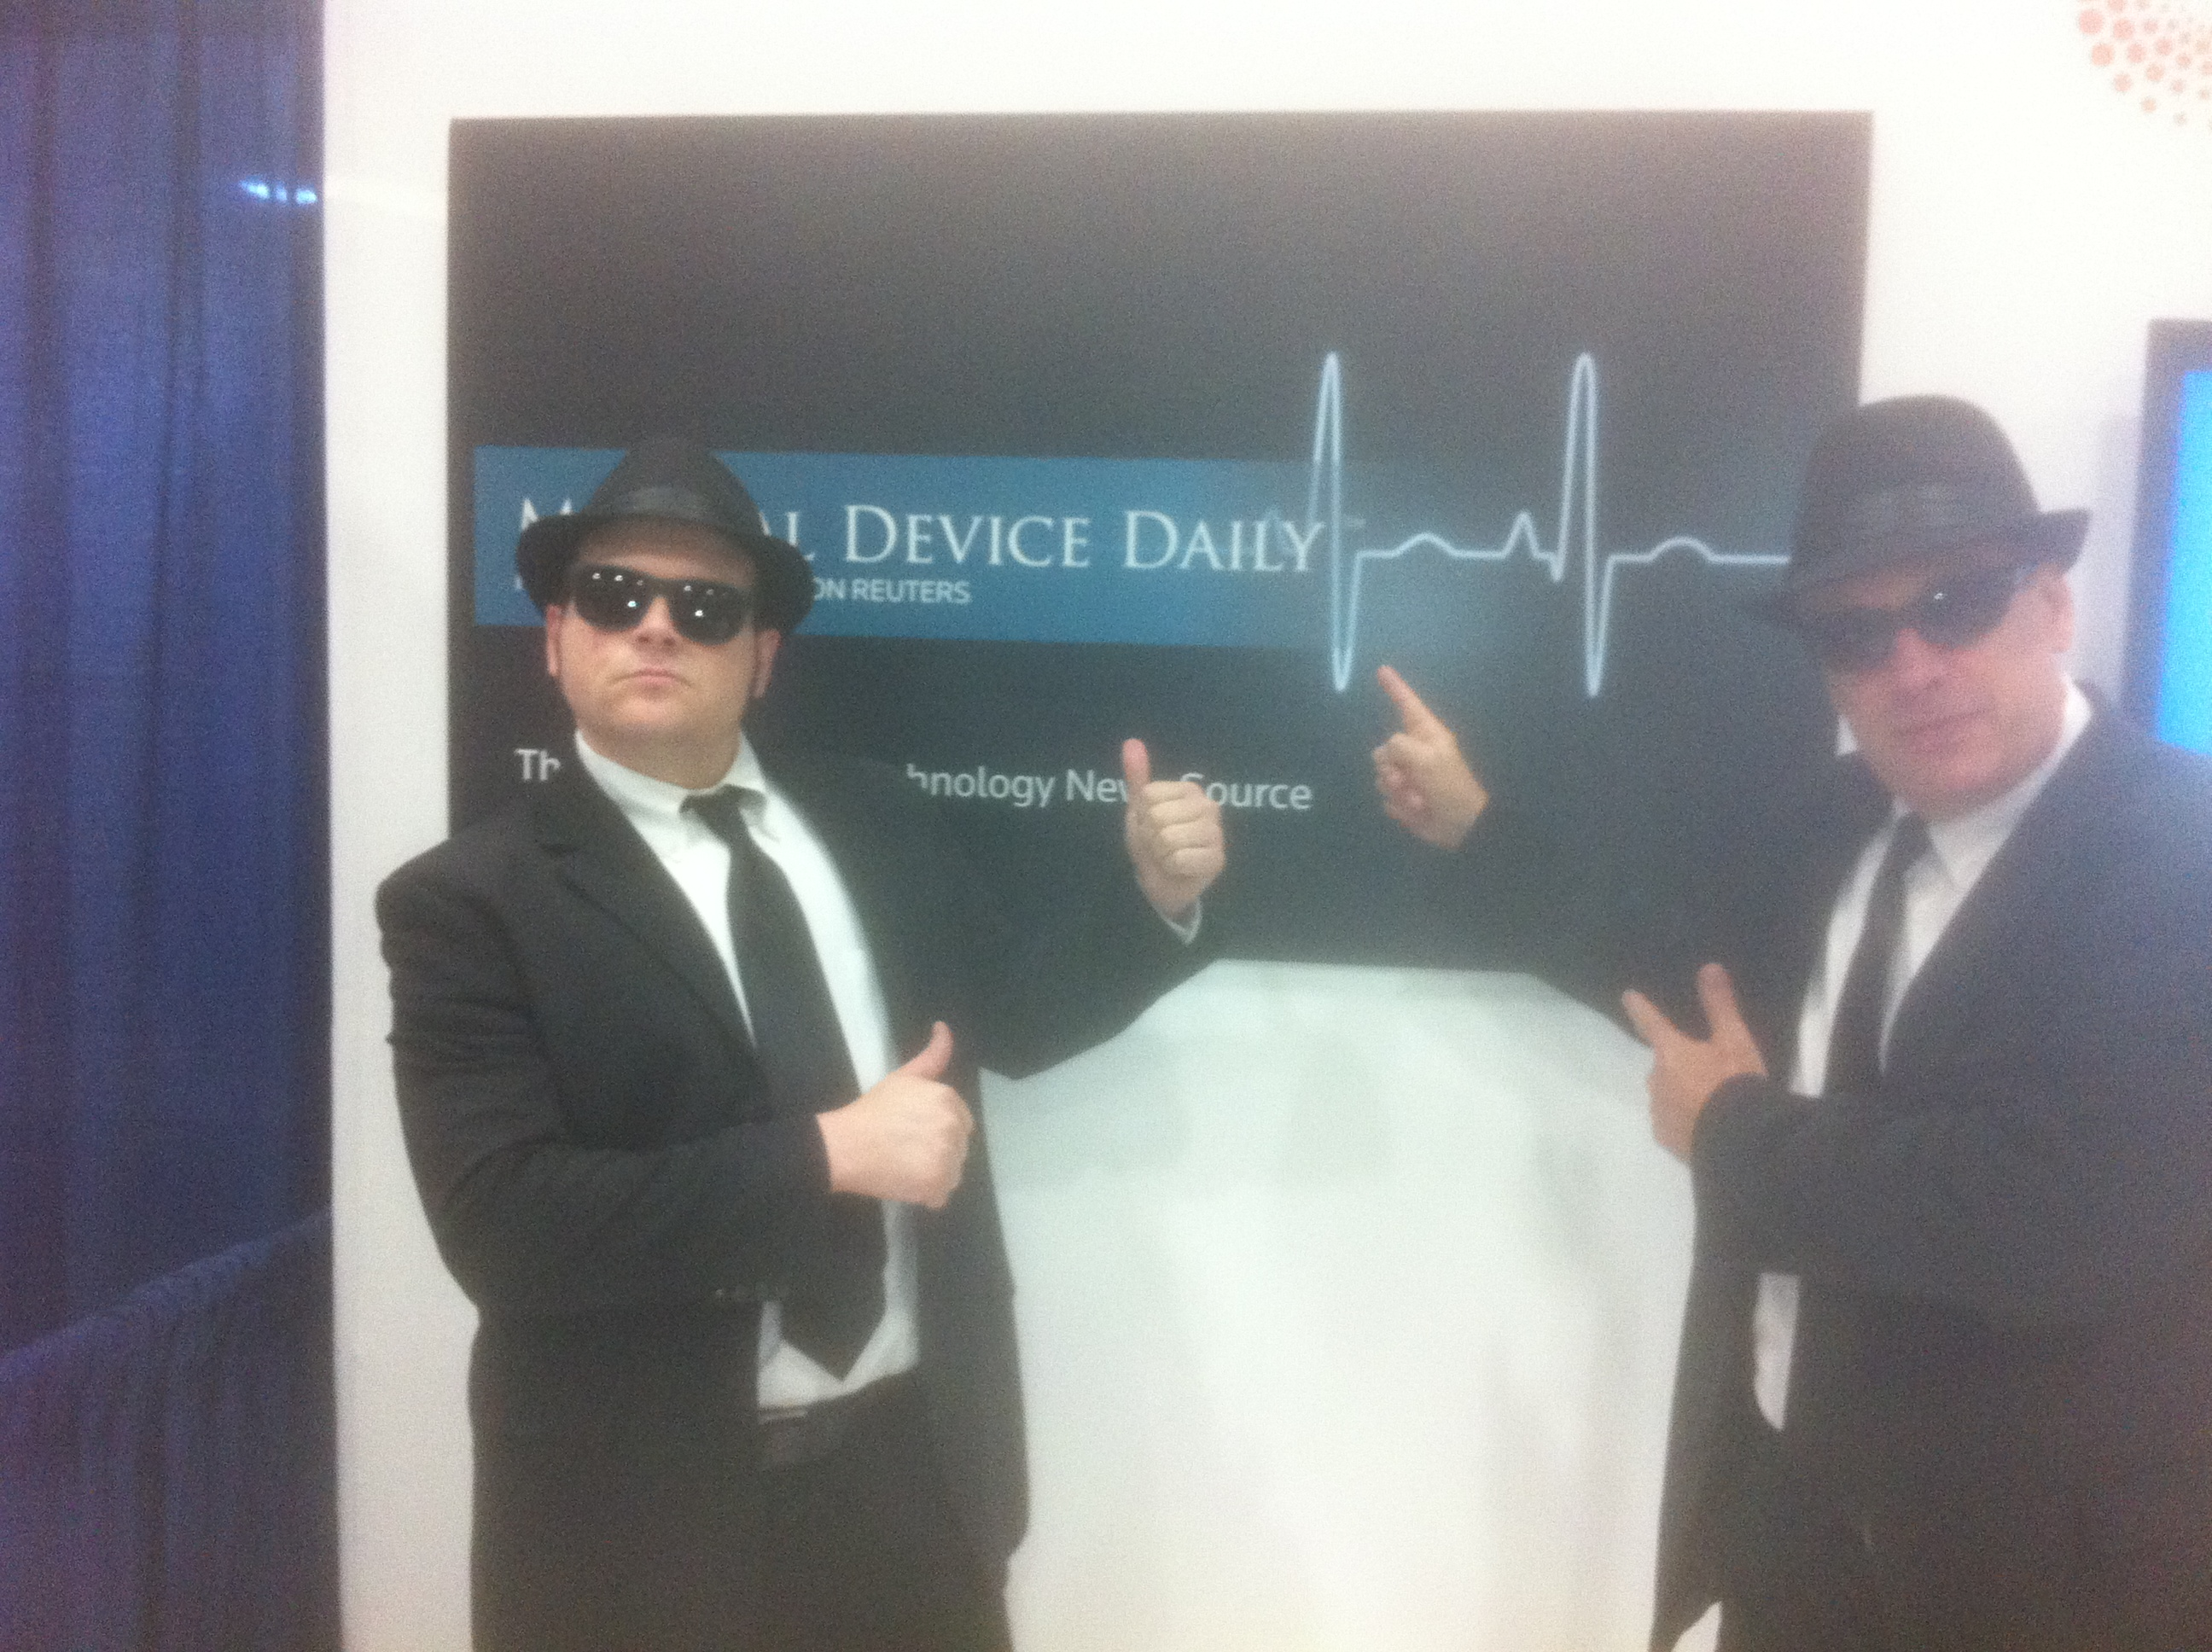 Medical Device Daily is Blues Brother-approved